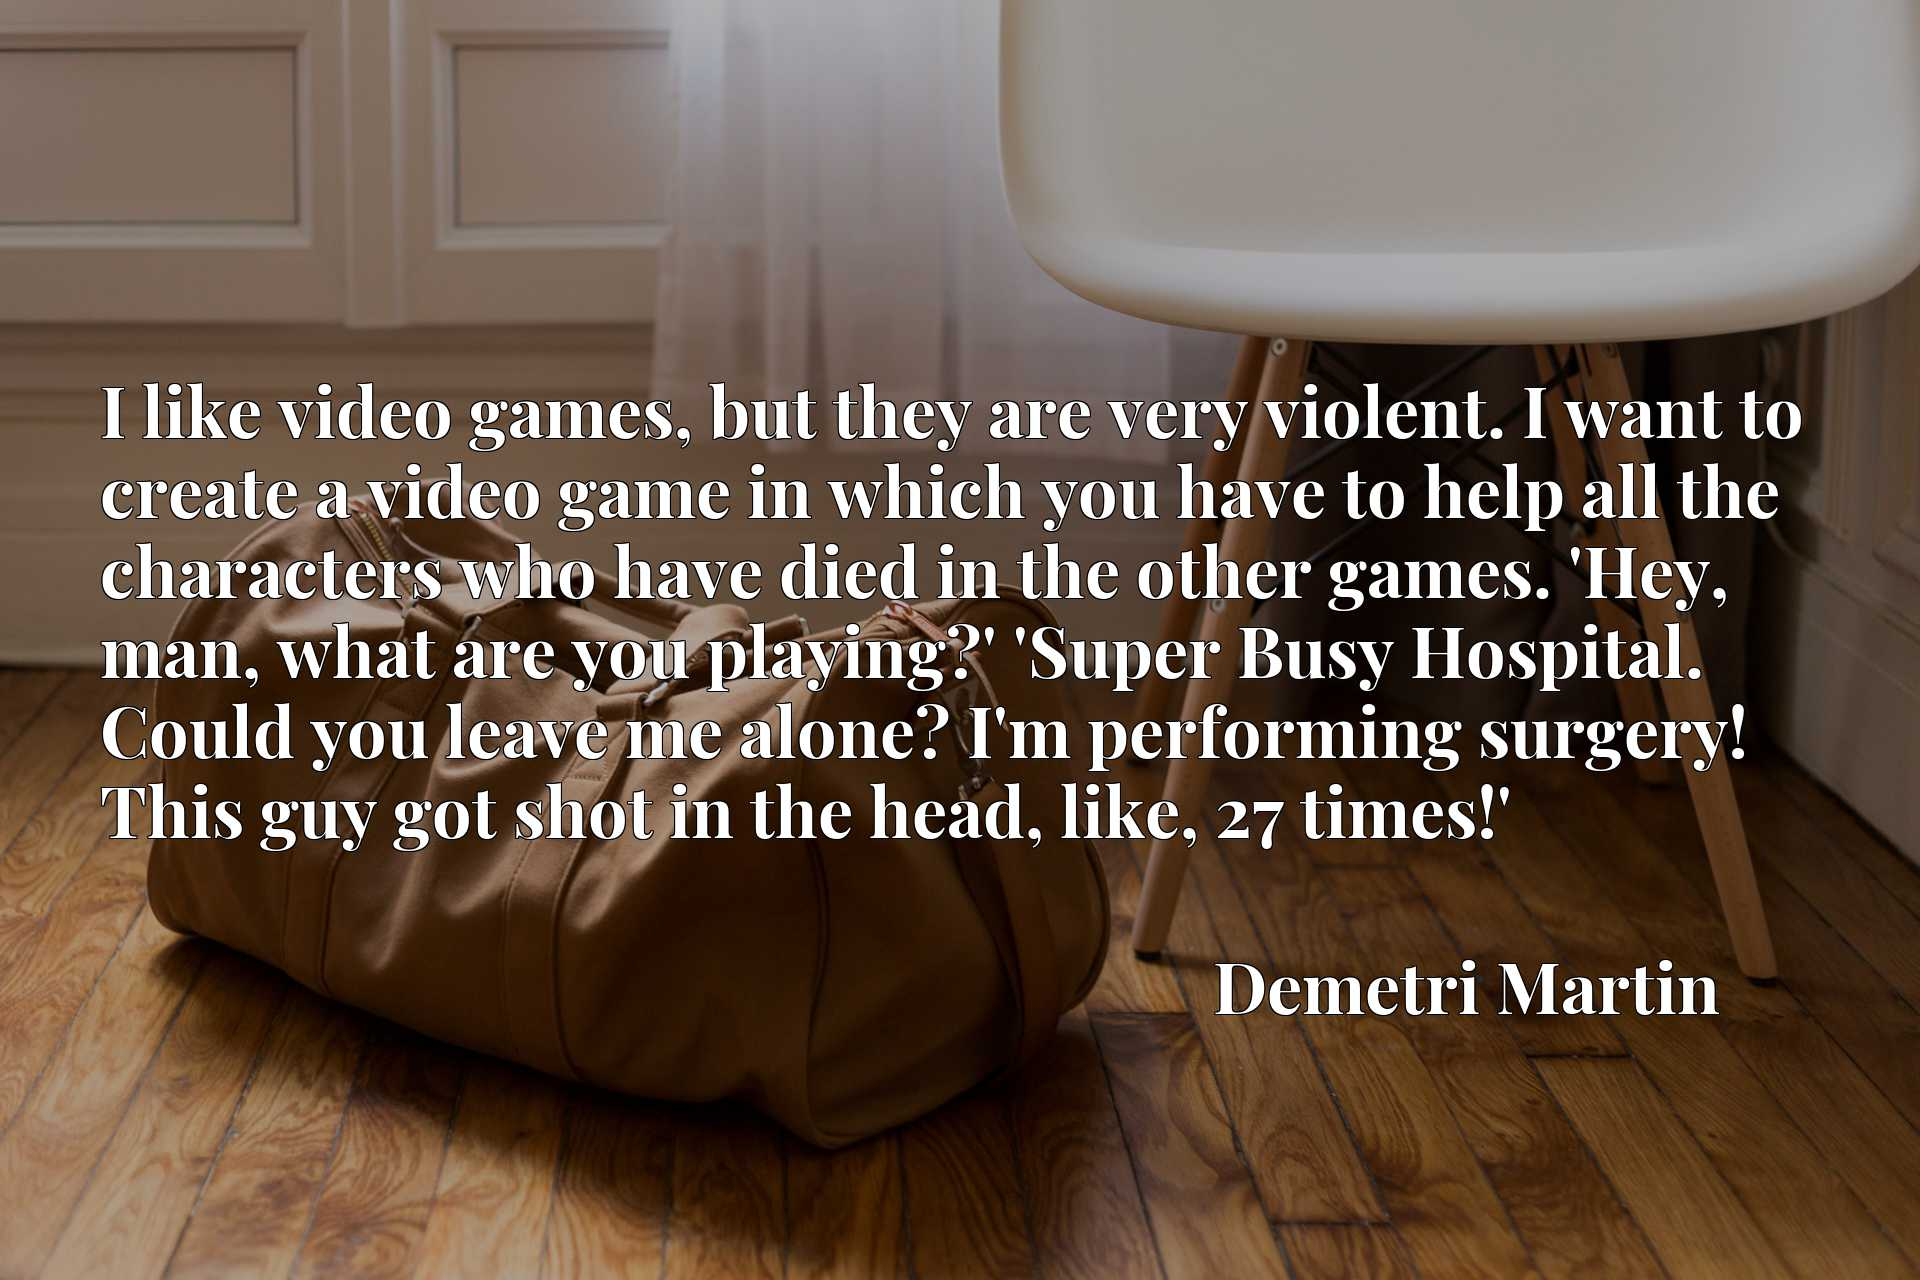 I like video games, but they are very violent. I want to create a video game in which you have to help all the characters who have died in the other games. 'Hey, man, what are you playing?' 'Super Busy Hospital. Could you leave me alone? I'm performing surgery! This guy got shot in the head, like, 27 times!'